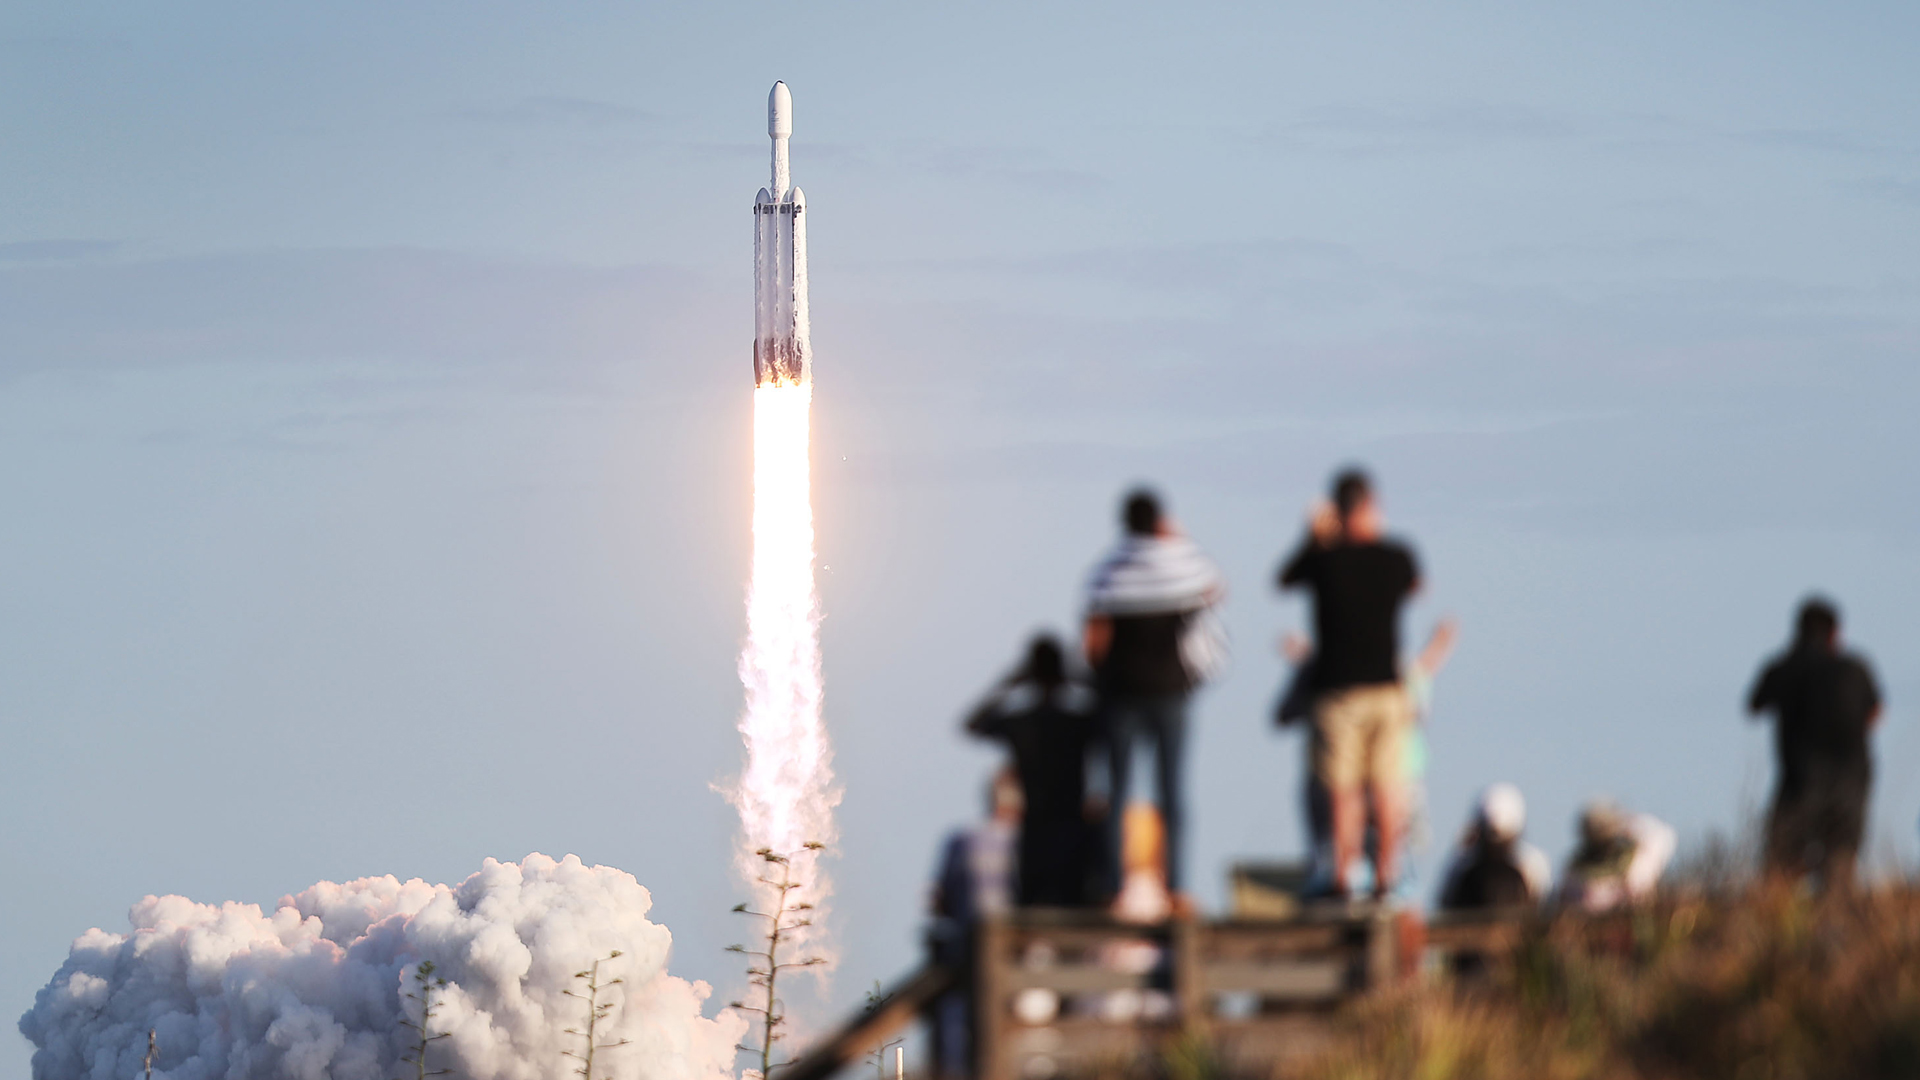 People watch as the SpaceX Falcon Heavy rocket lifts off from NASA's Kennedy Space Center on April 11, 2019, in Titusville, Florida. (Joe Raedle/Getty Images)